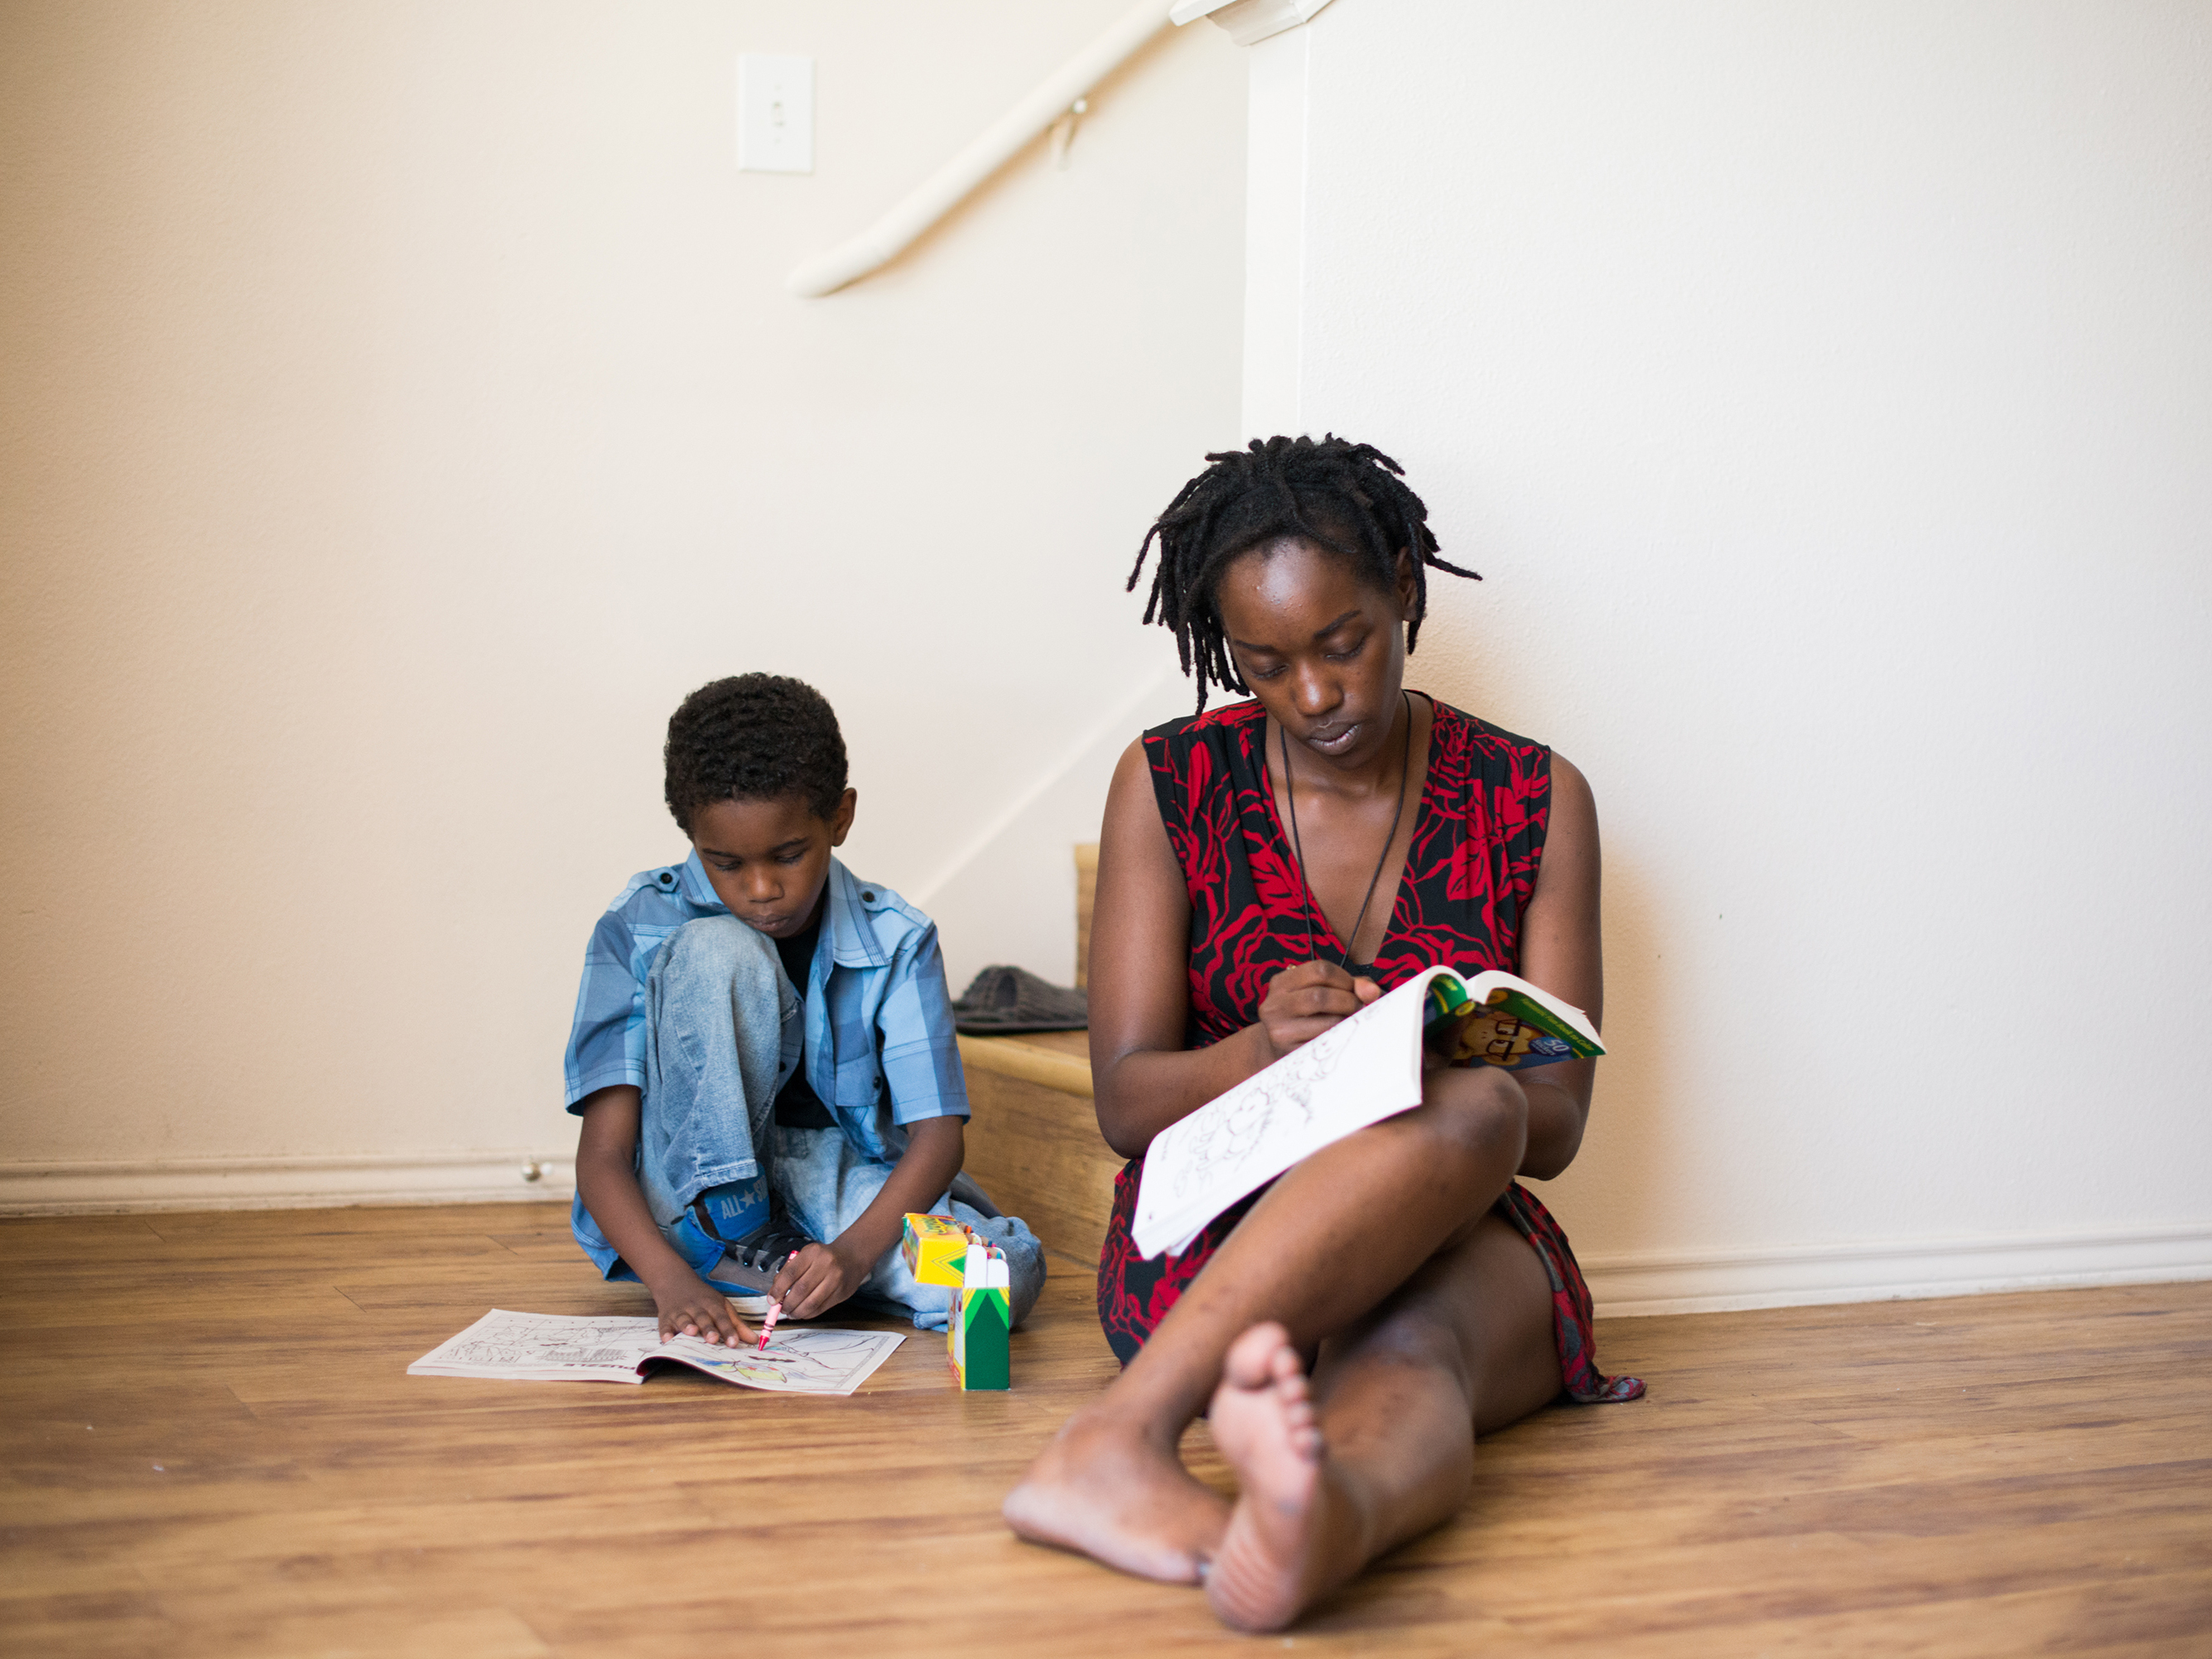 Farryn Giles colors with her son Isaiah at their apartment in Dallas. (Brandon Thibodeaux for NPR)